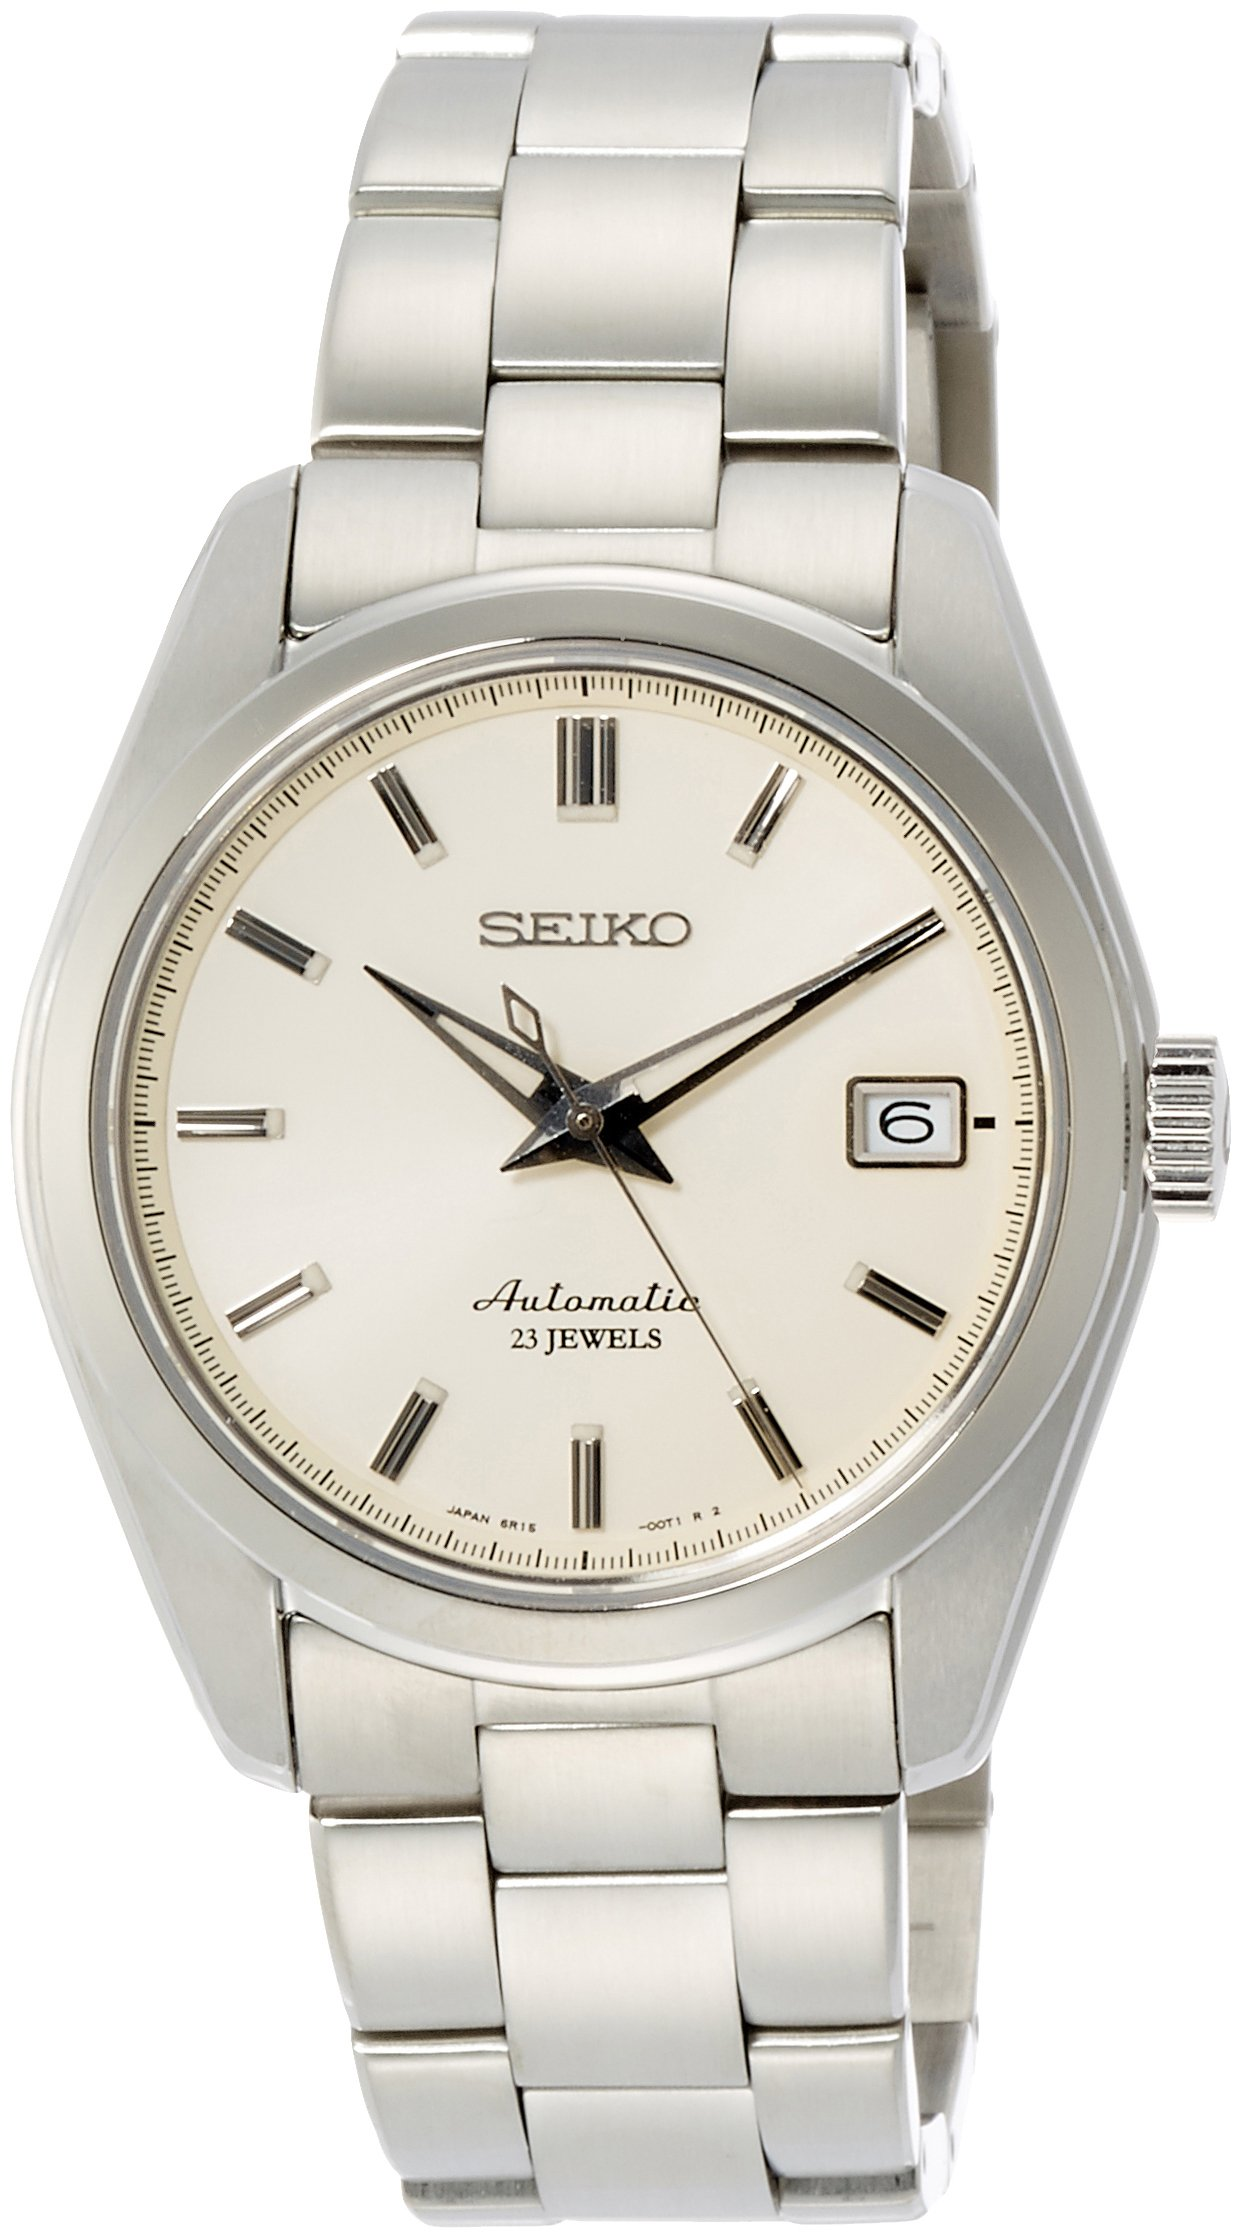 Seiko Men's Japanese-Automatic Watch with Stainless-Steel Strap, Silver, 20 (Model: SARB035) by SEIKO